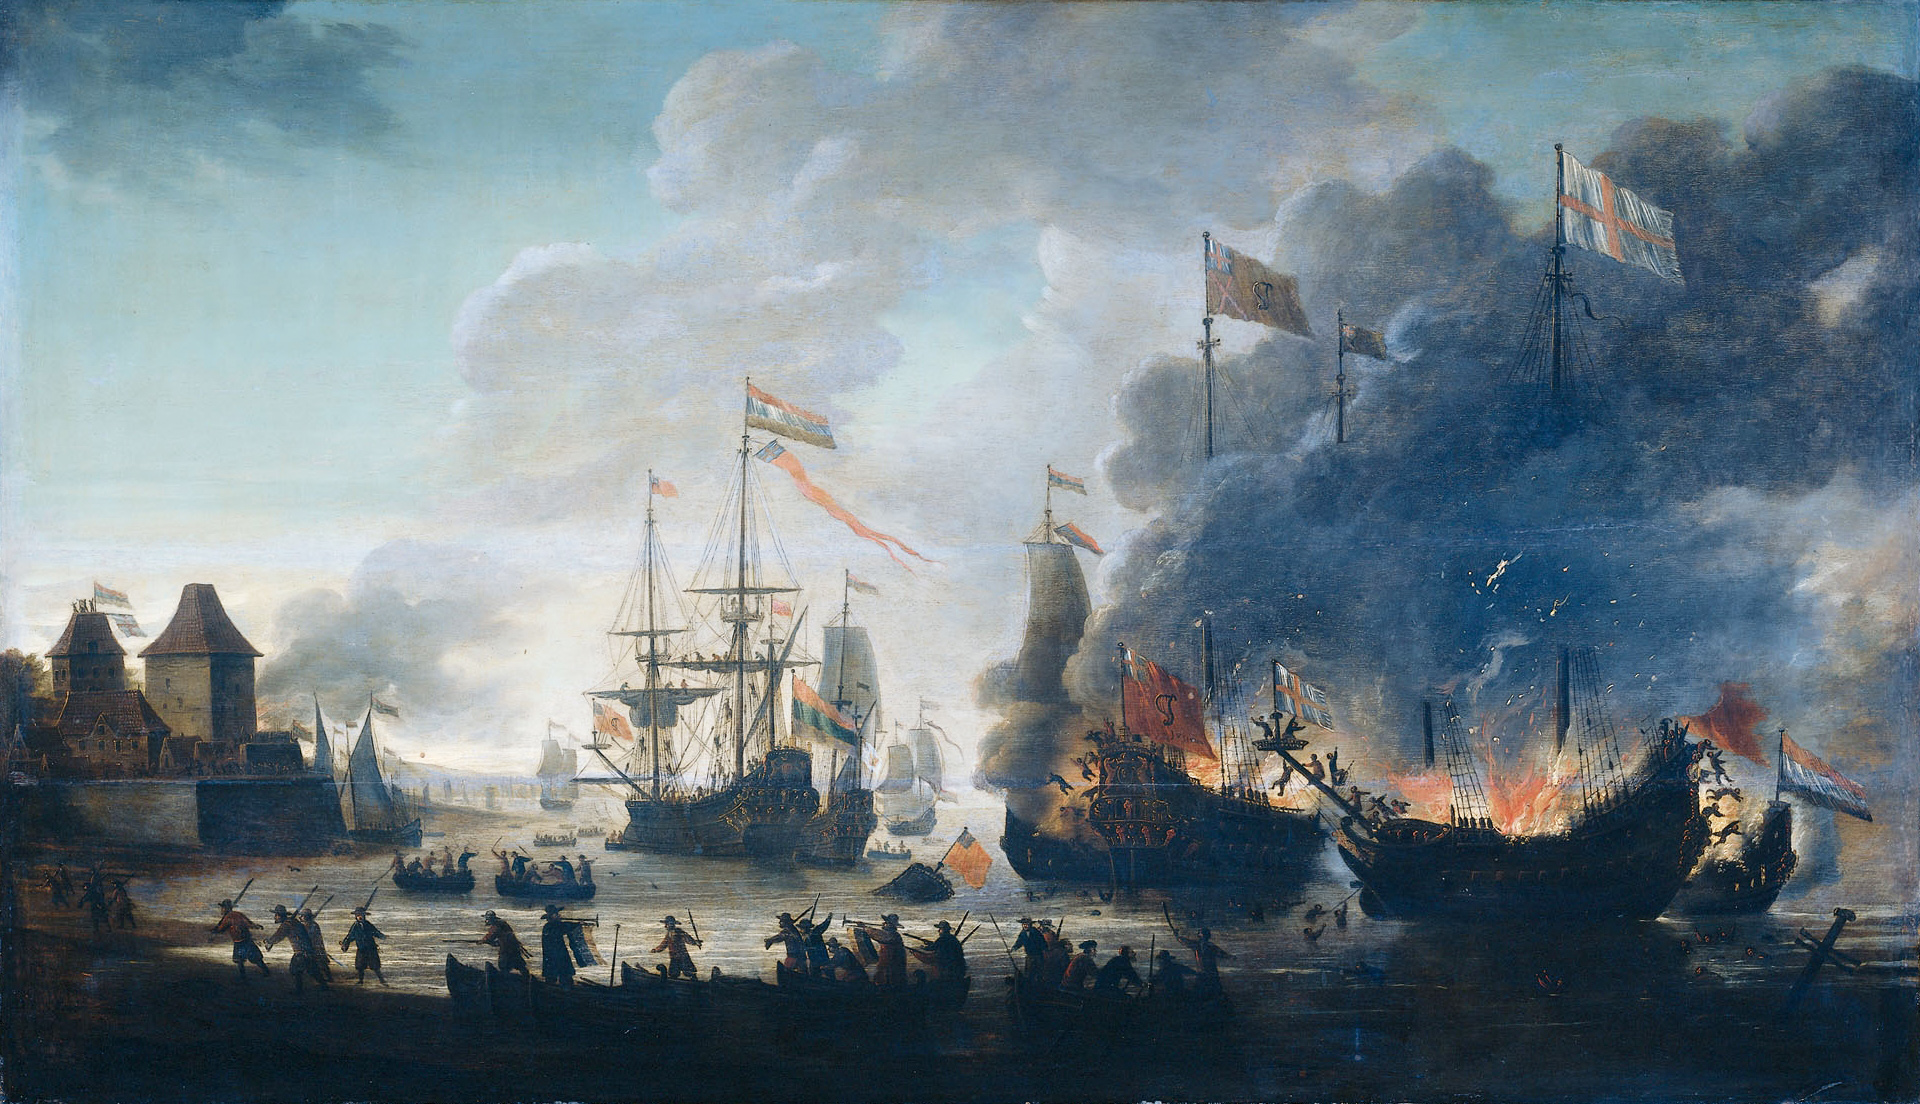 The-Dutch-burn-English-ships-during-the-